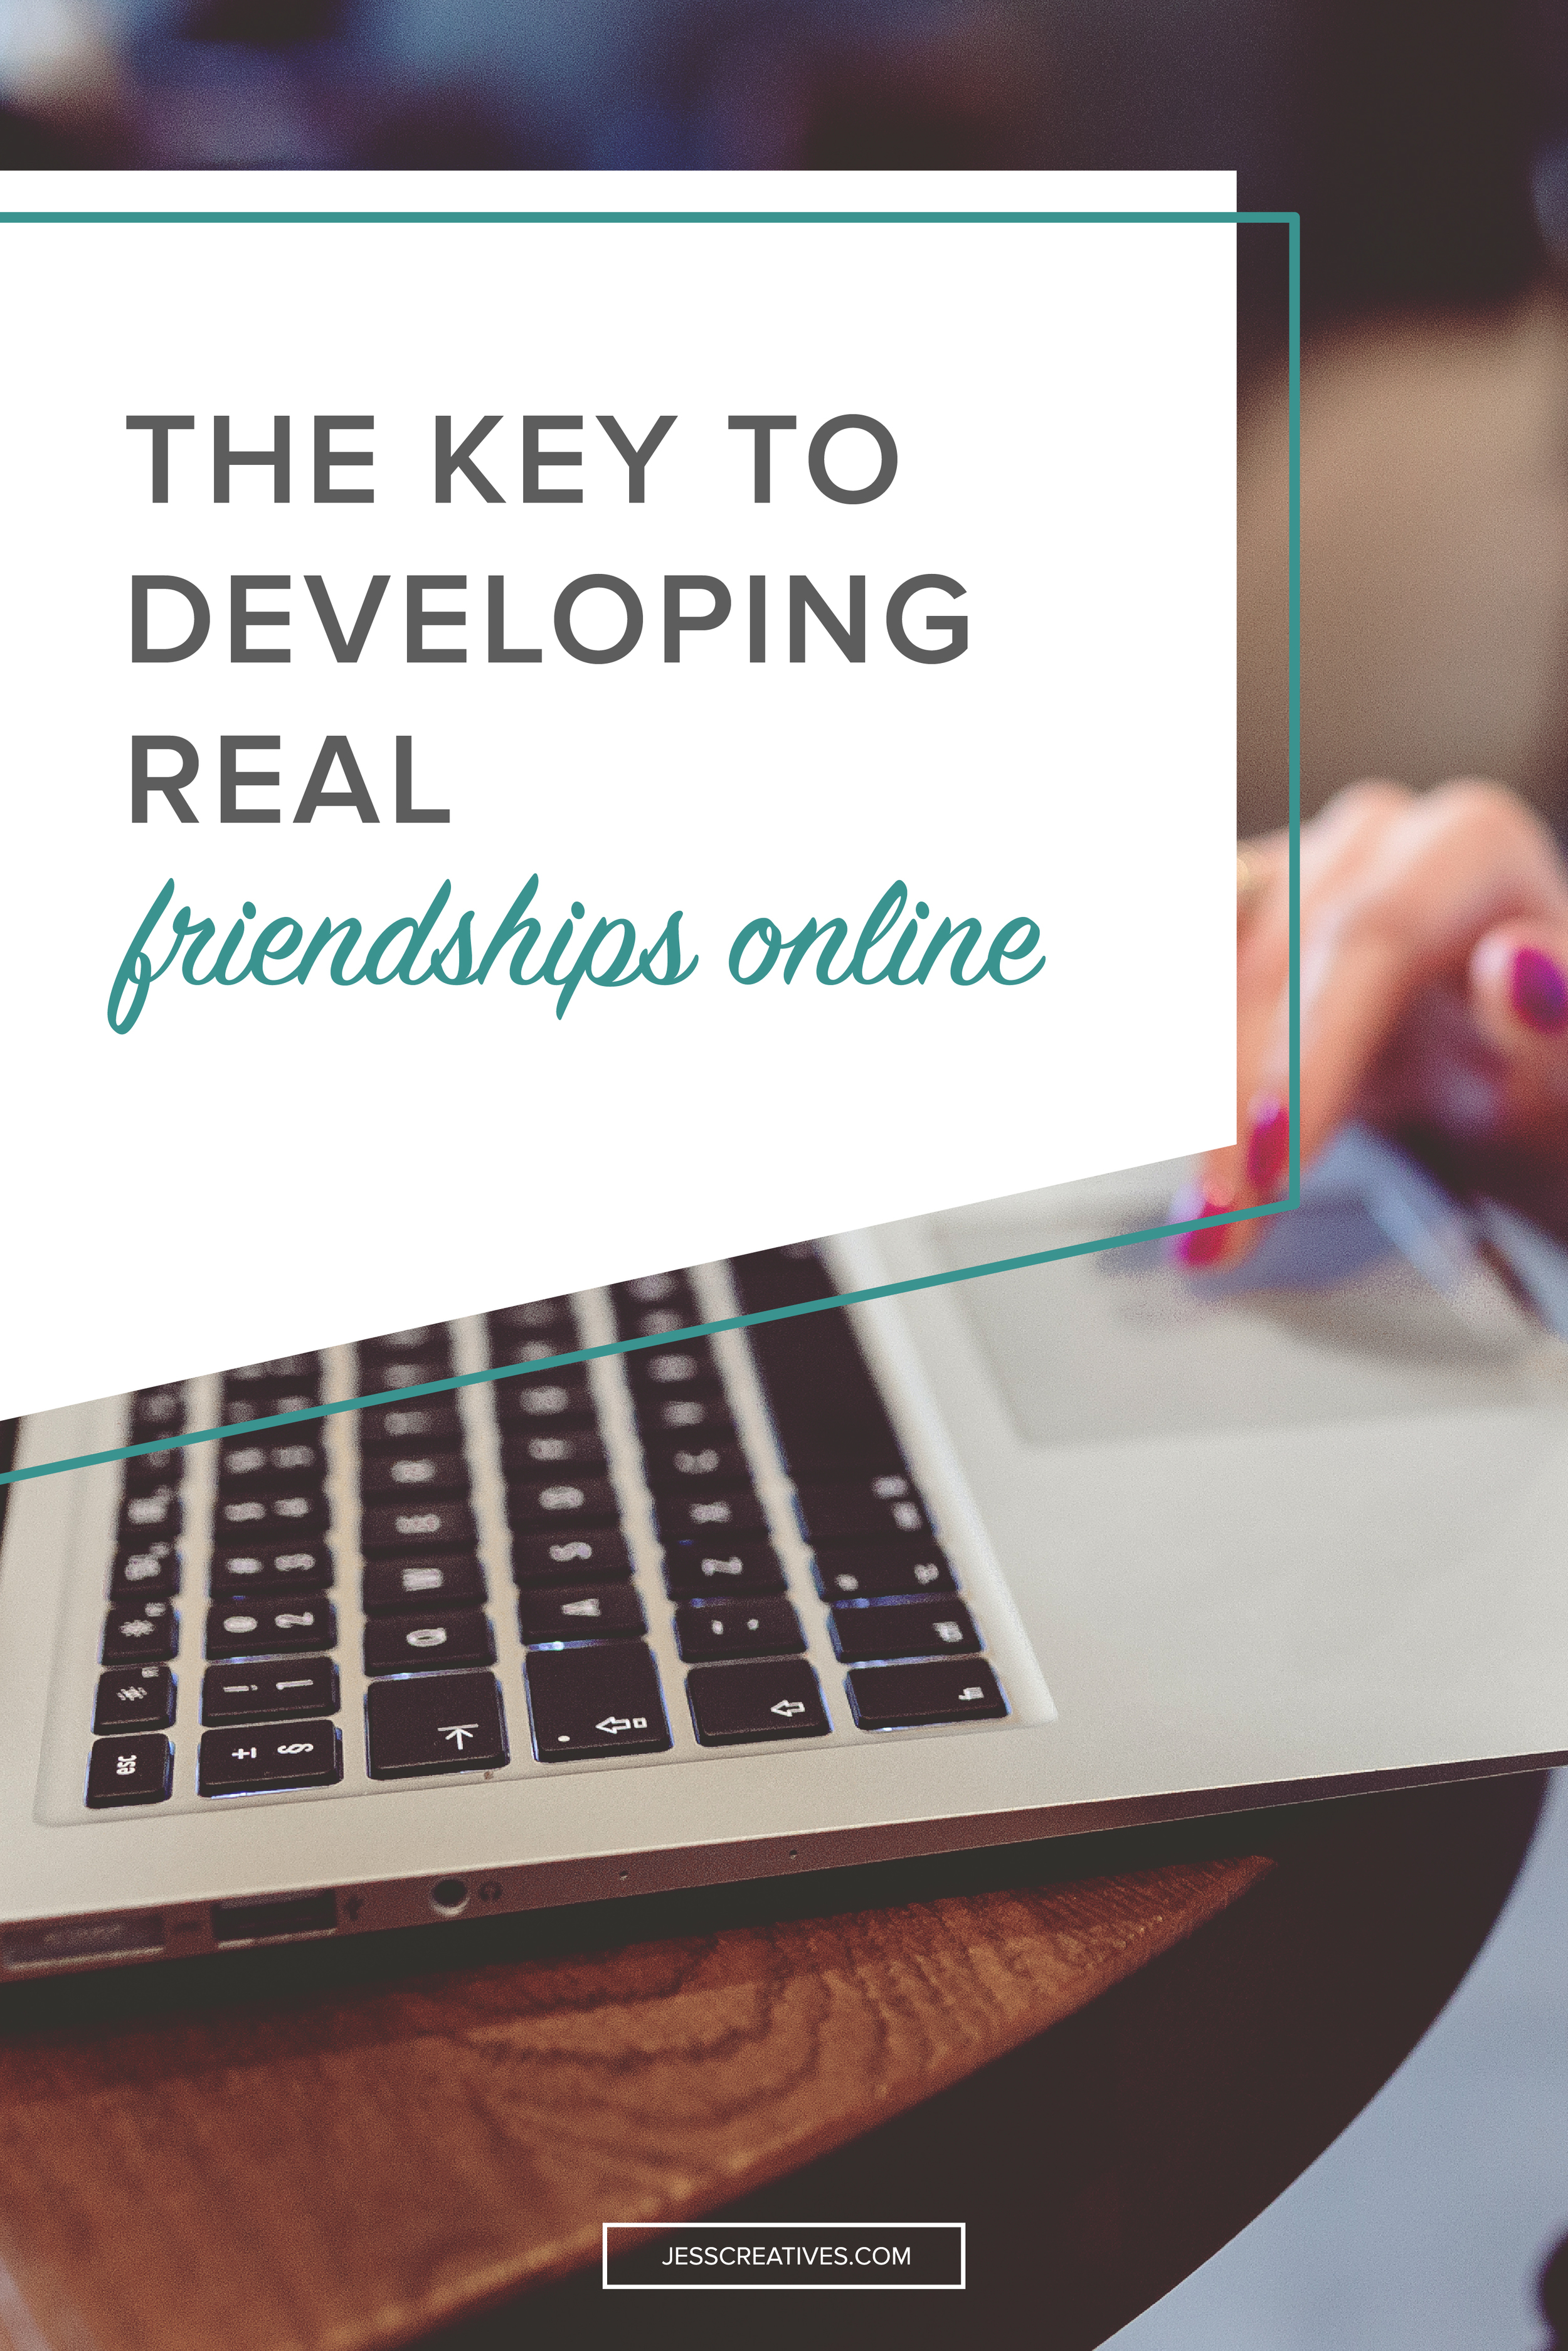 The key to developing real friendships online